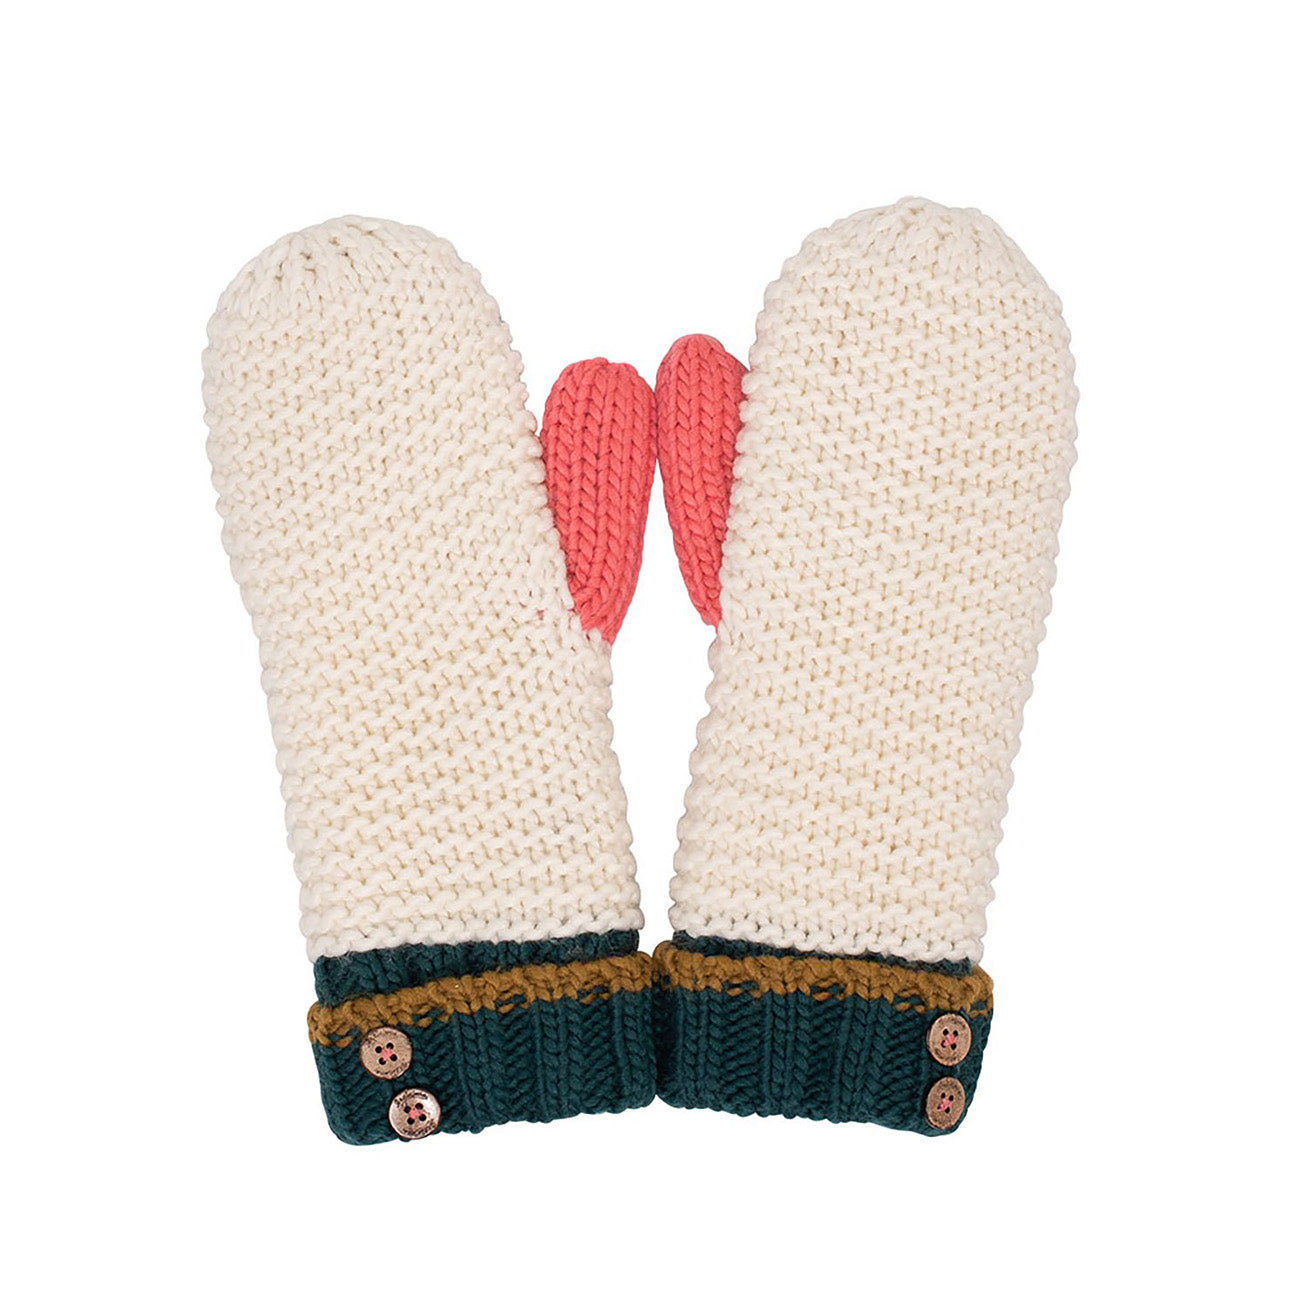 Colour Block Mittens